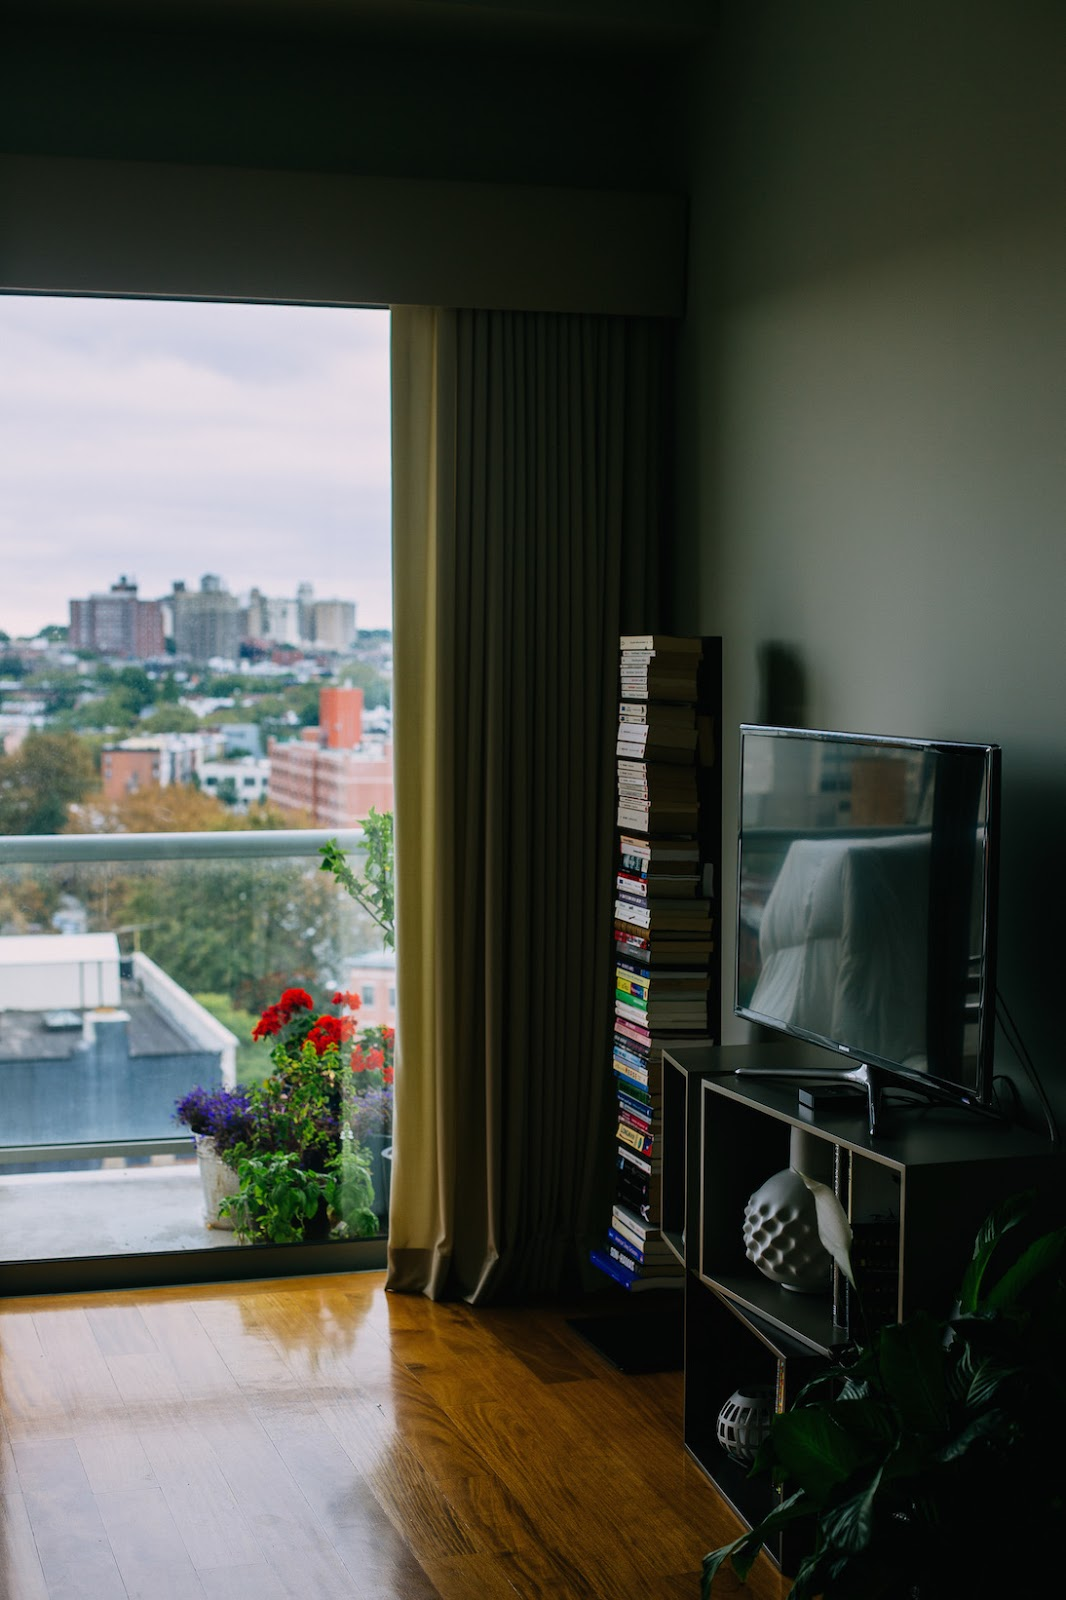 airbnb-brooklyn-fort-greene-new-york-city-11.jpg